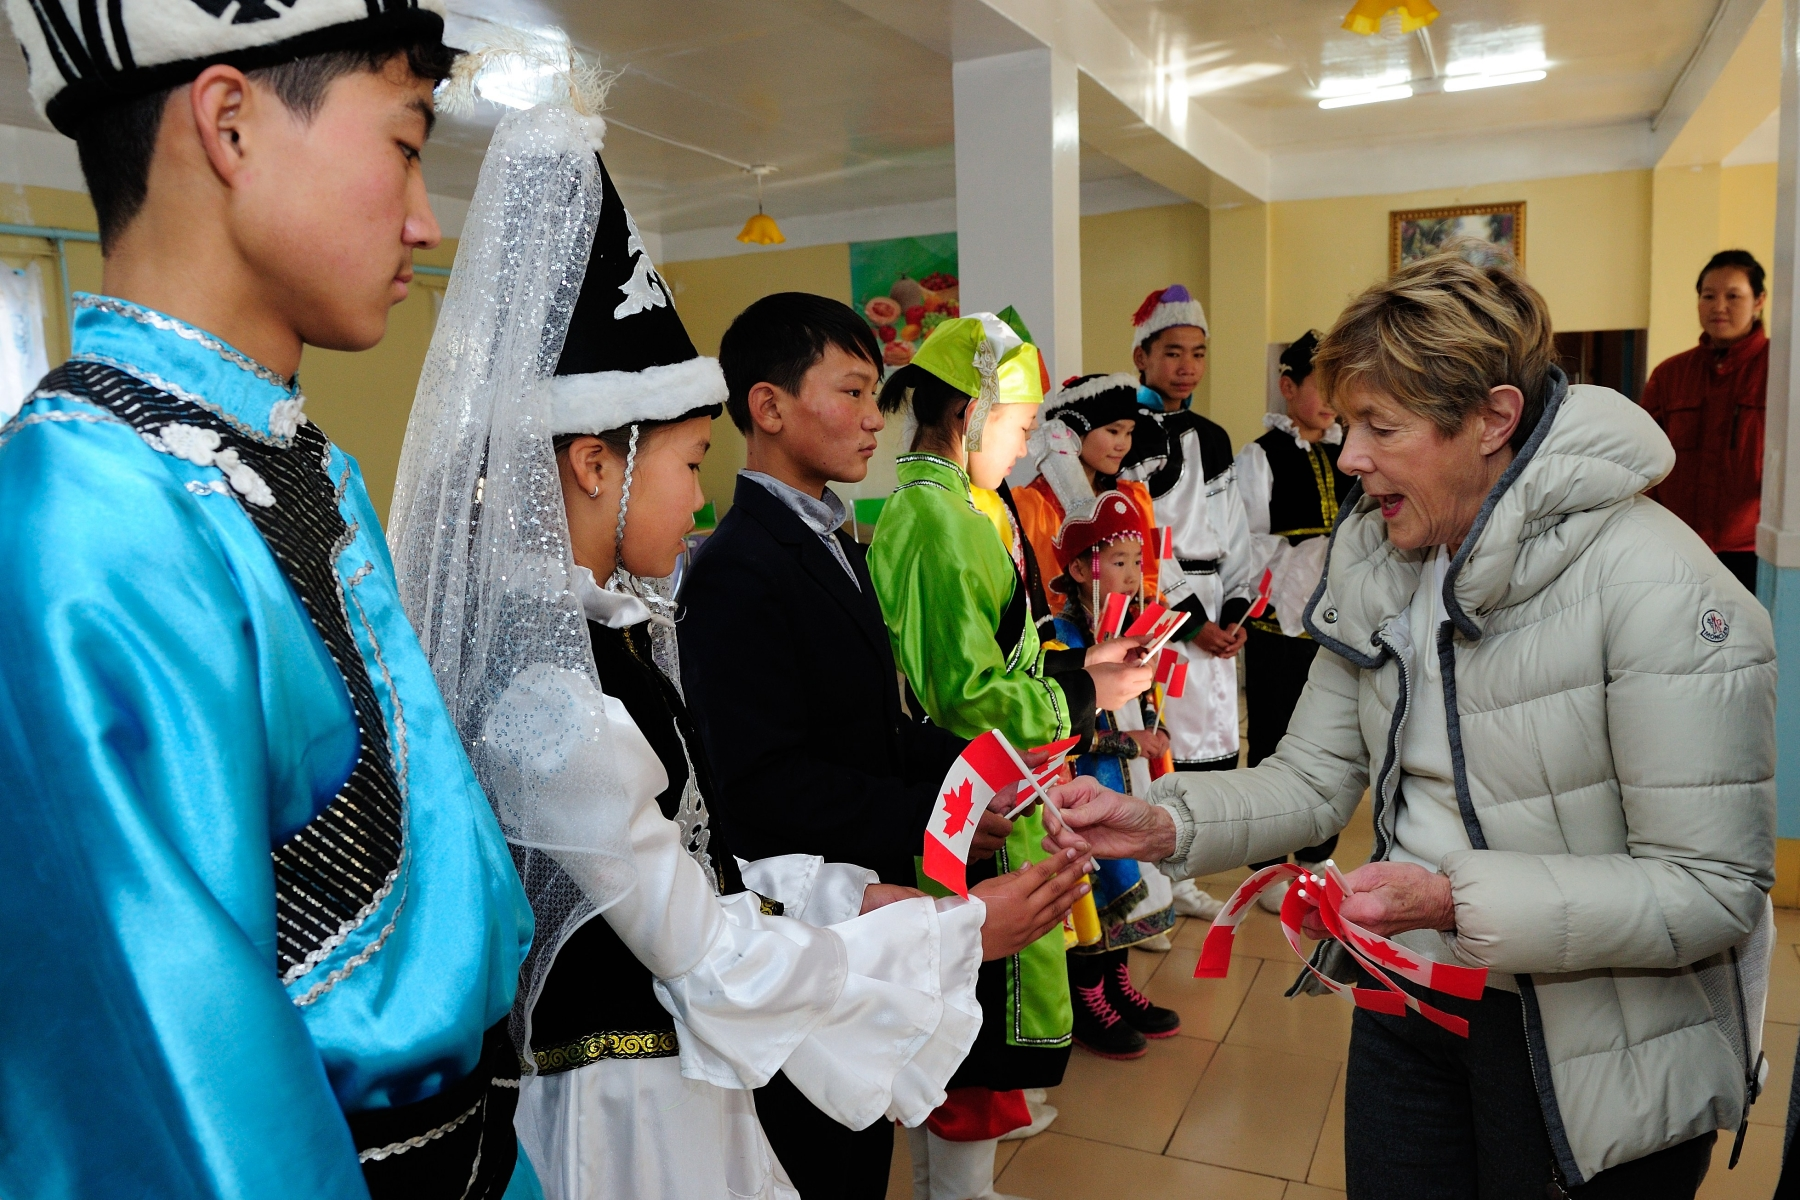 On the morning of October 26, 2013, Her Excellency traveled to Erdene County, outside of Ulaanbaatar, to highlight a Canada Fund for Local Initiatives project and to familiarize herself with the customary way of life in rural Mongolia.